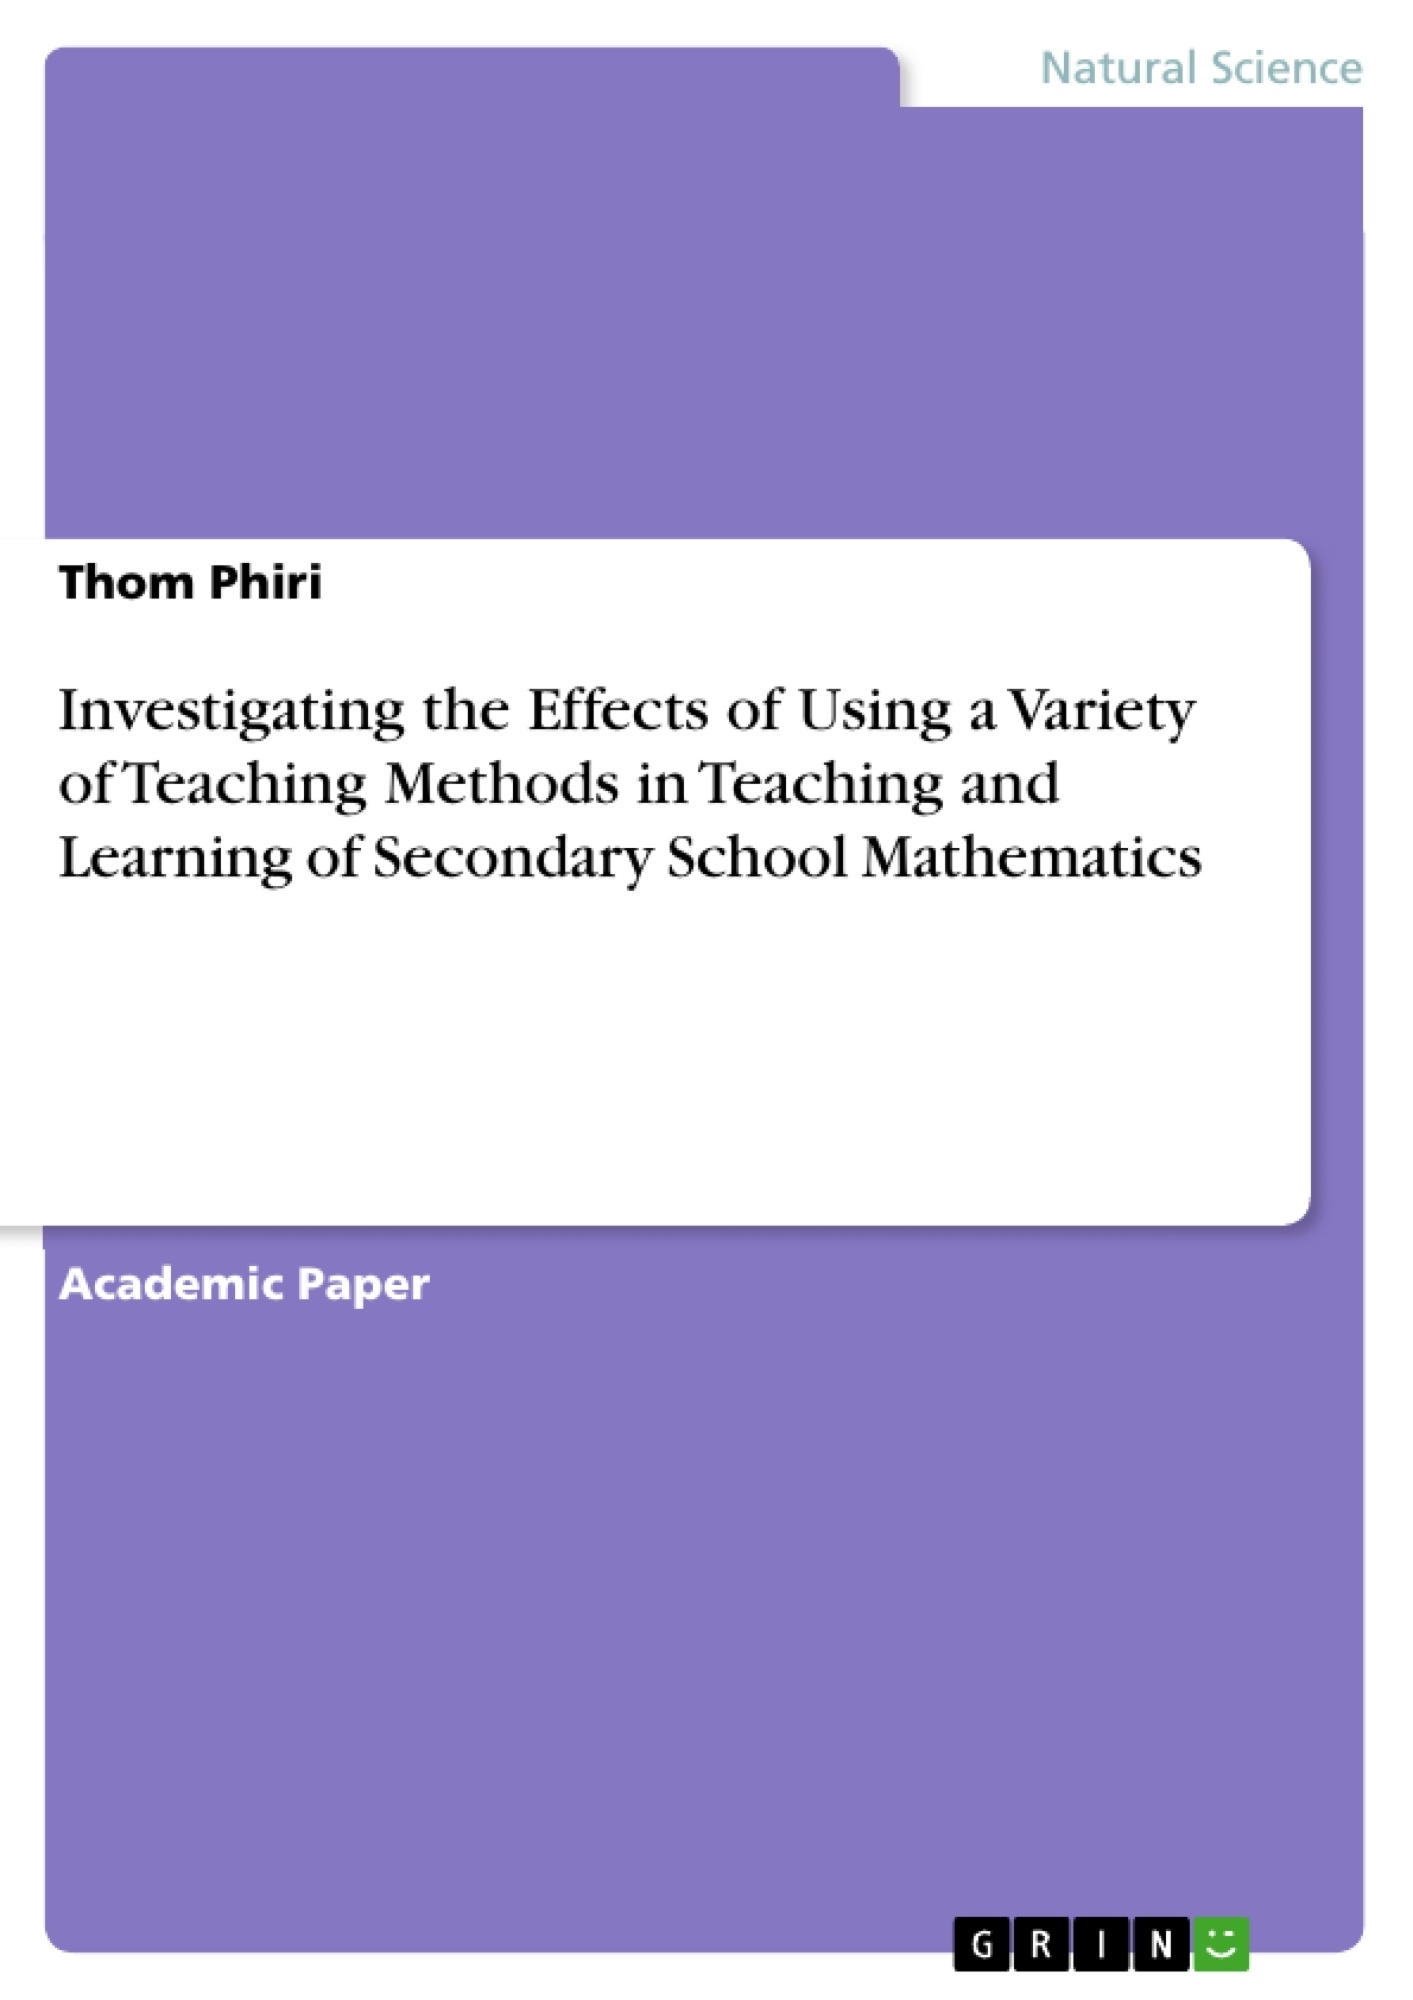 Title: Investigating the Effects of Using a Variety of Teaching Methods in Teaching and Learning of Secondary School Mathematics